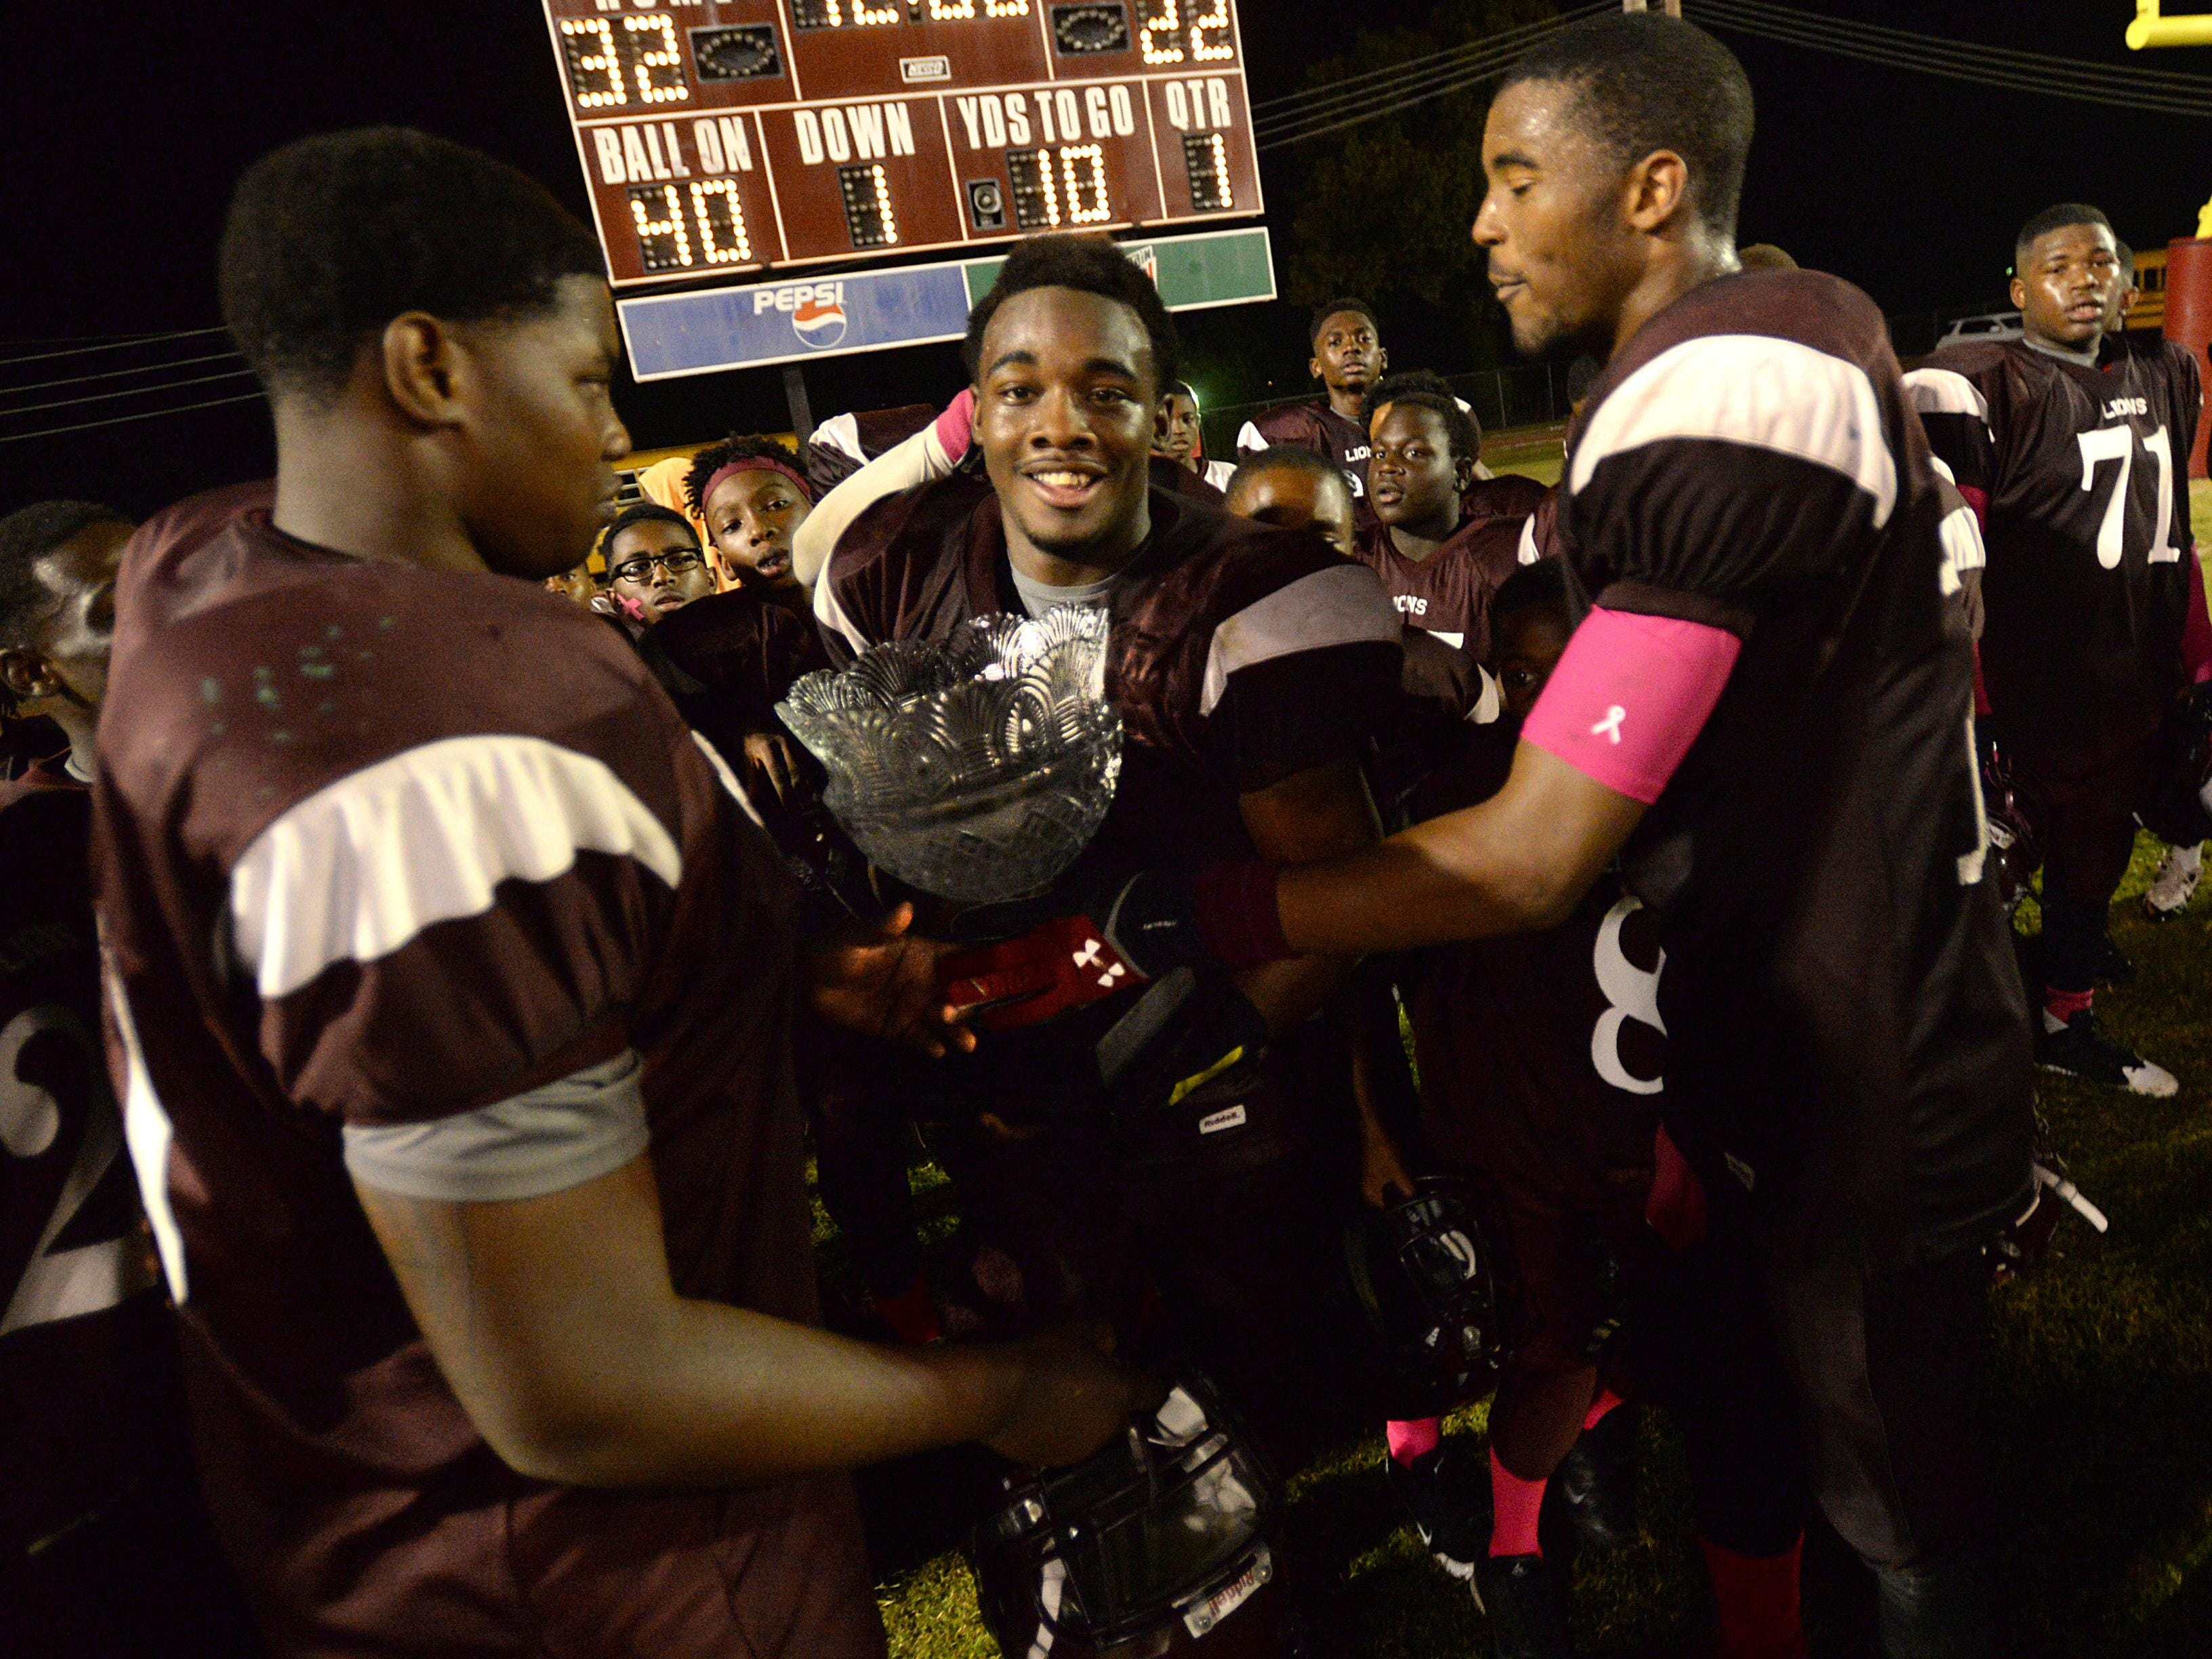 BTW's Joshua Horton carries the Soul Bowl trophy after his team defeated Green Oaks, 32-22 in the 2014 Soul Bowl.